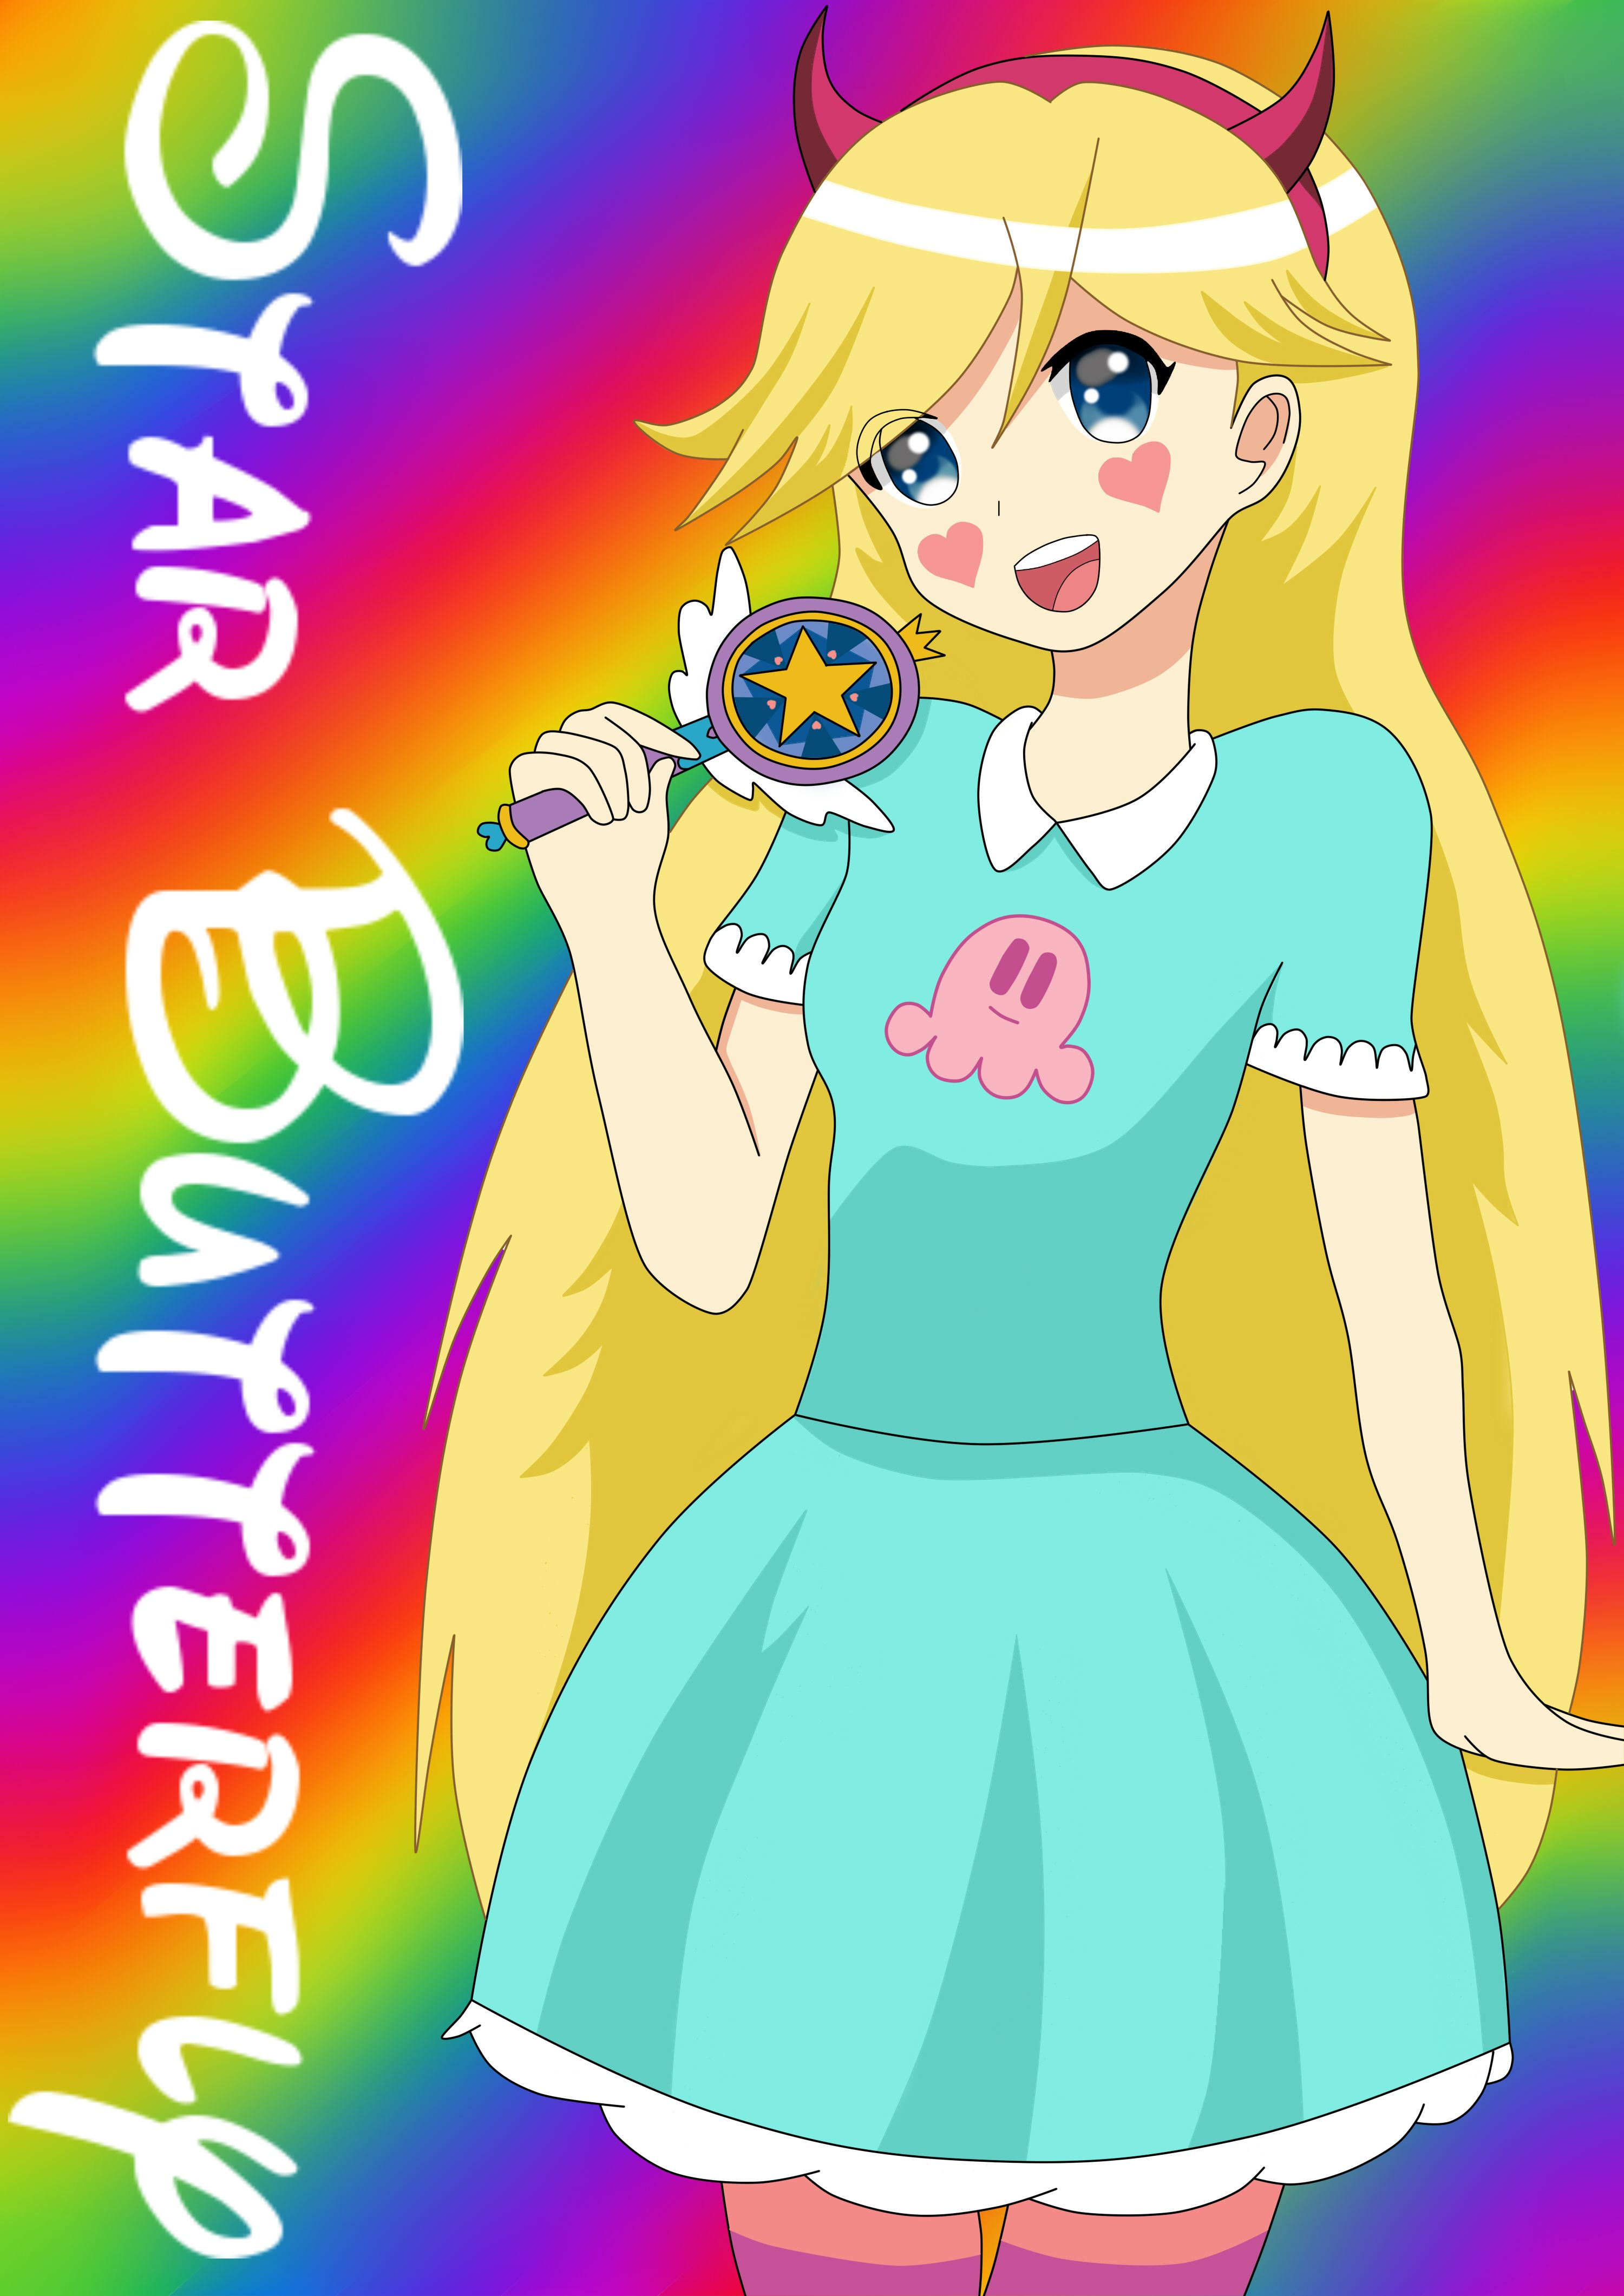 My Star Butterfly anime version *-*